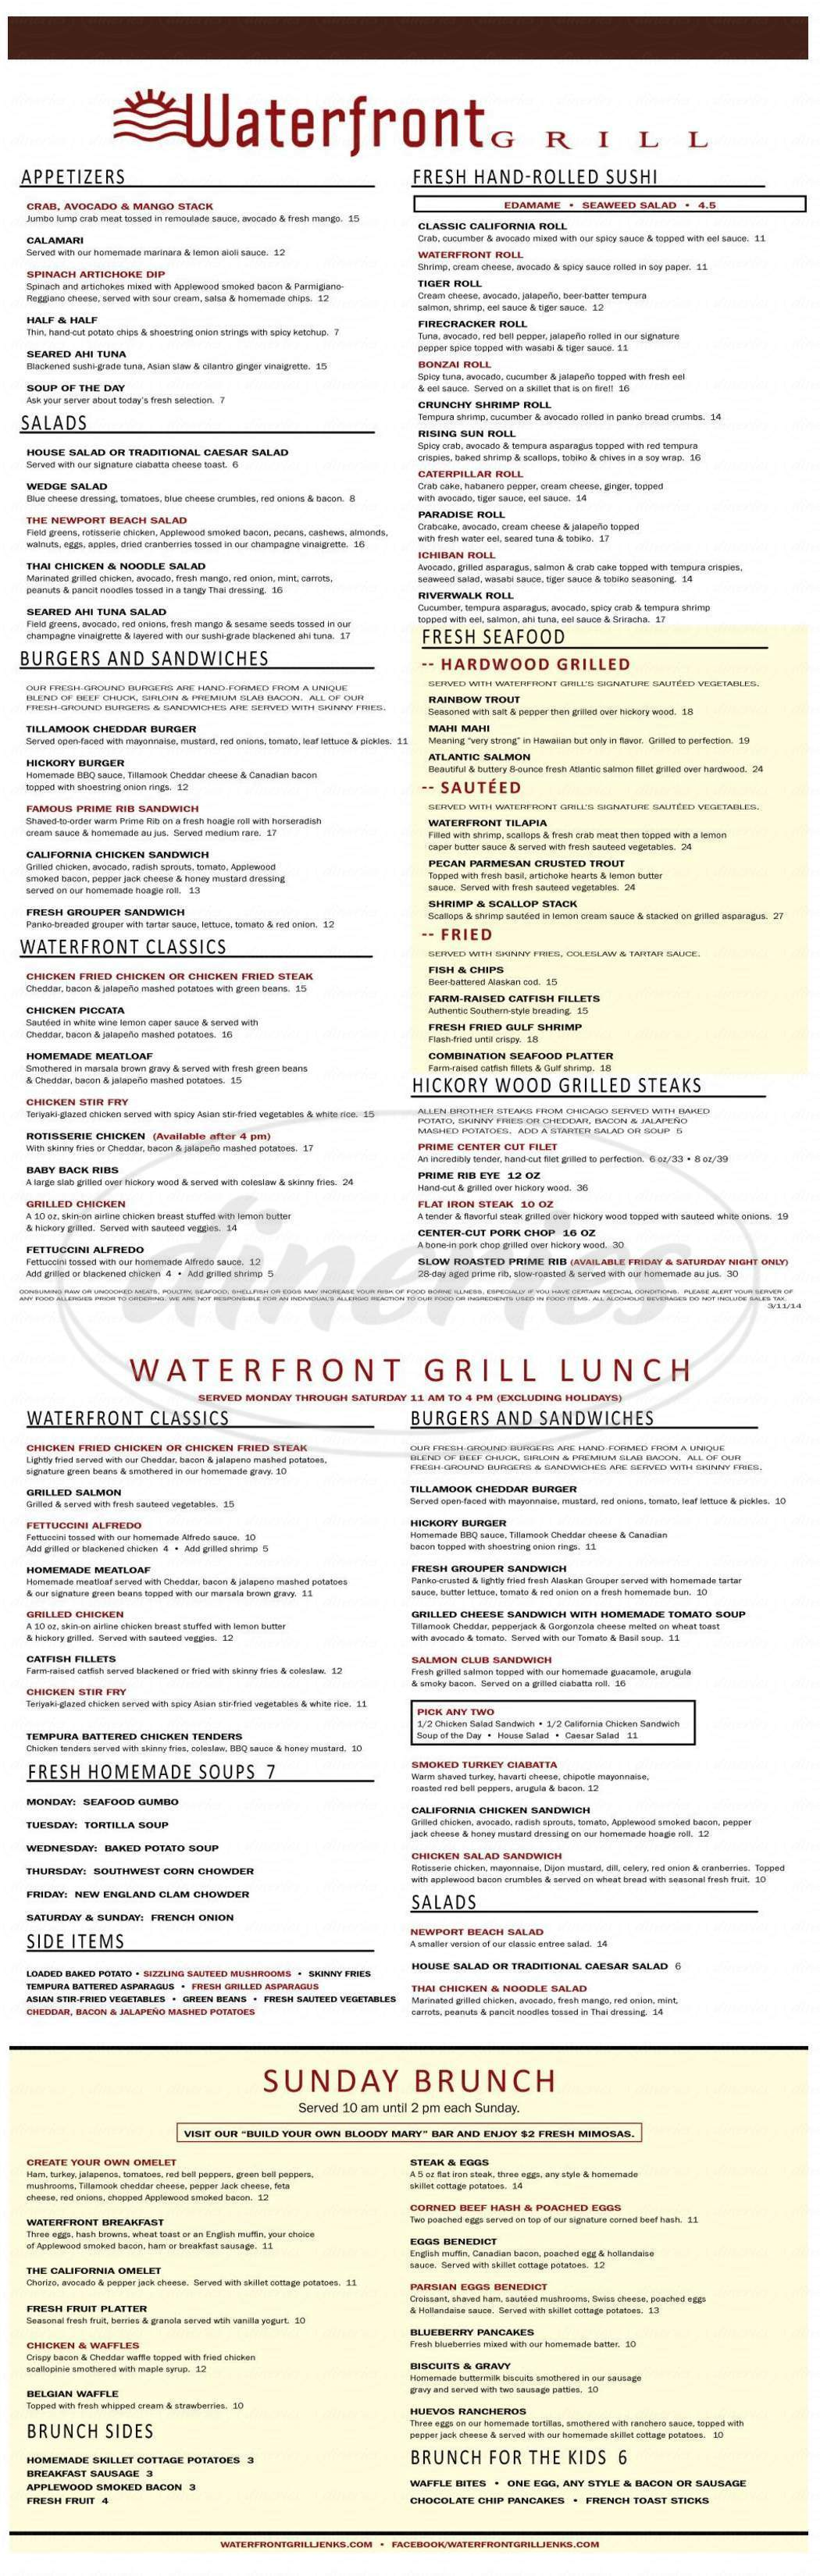 menu for Waterfront Grill